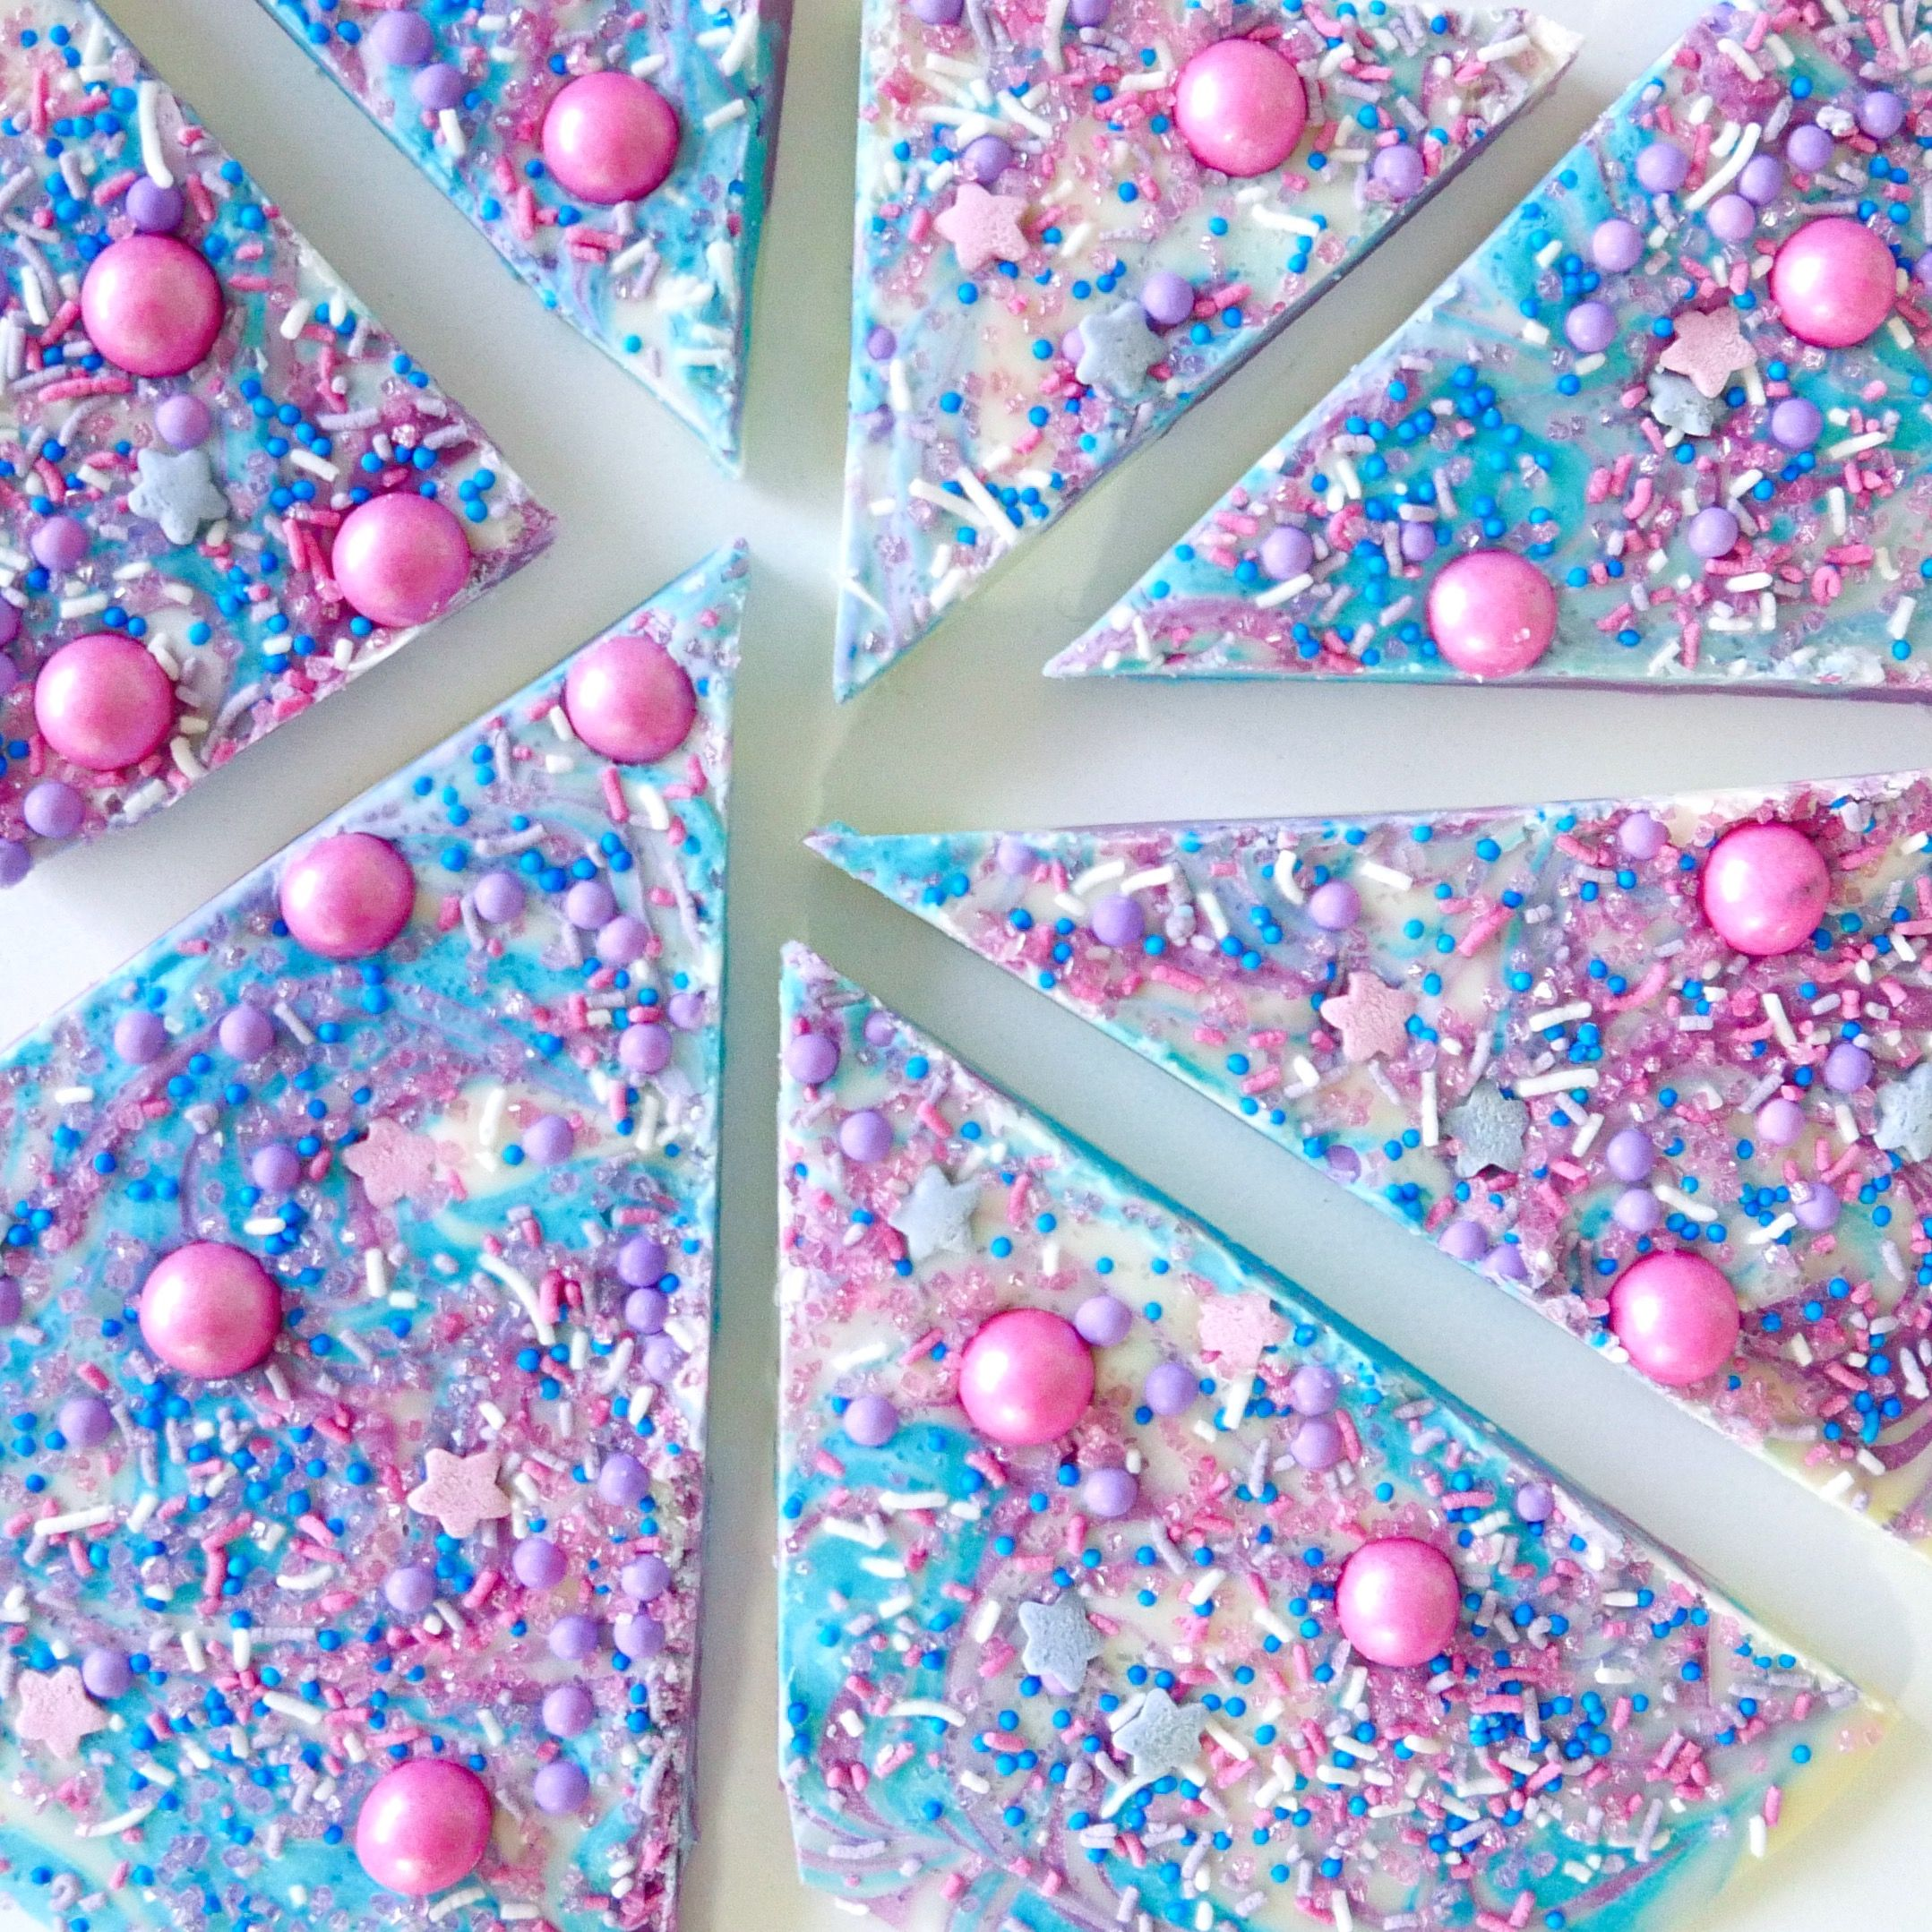 Colourful Candy Shards : Whipped Cake Co   baking and